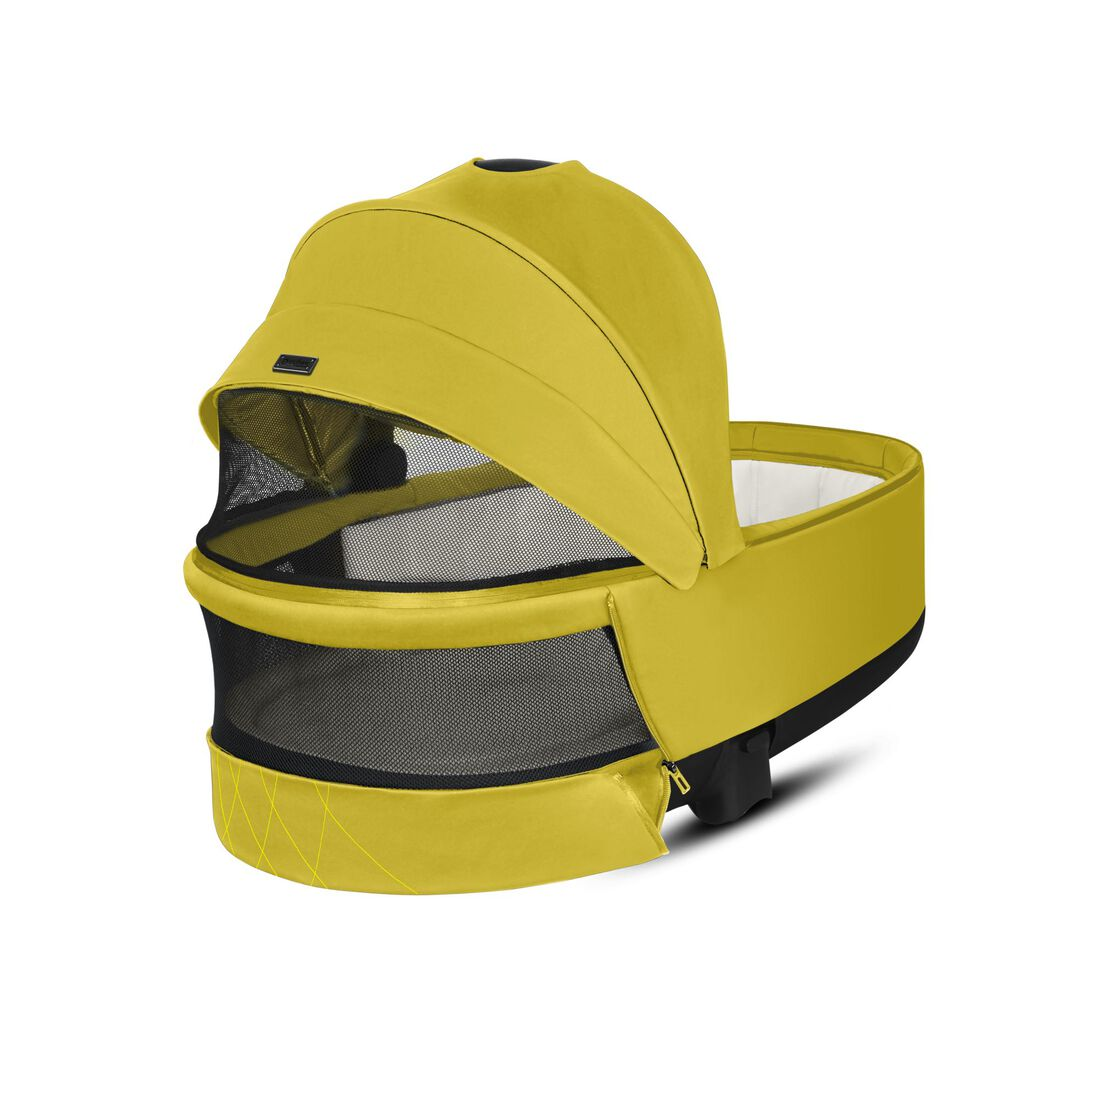 CYBEX Priam Lux Carry Cot - Mustard Yellow in Mustard Yellow large Bild 4